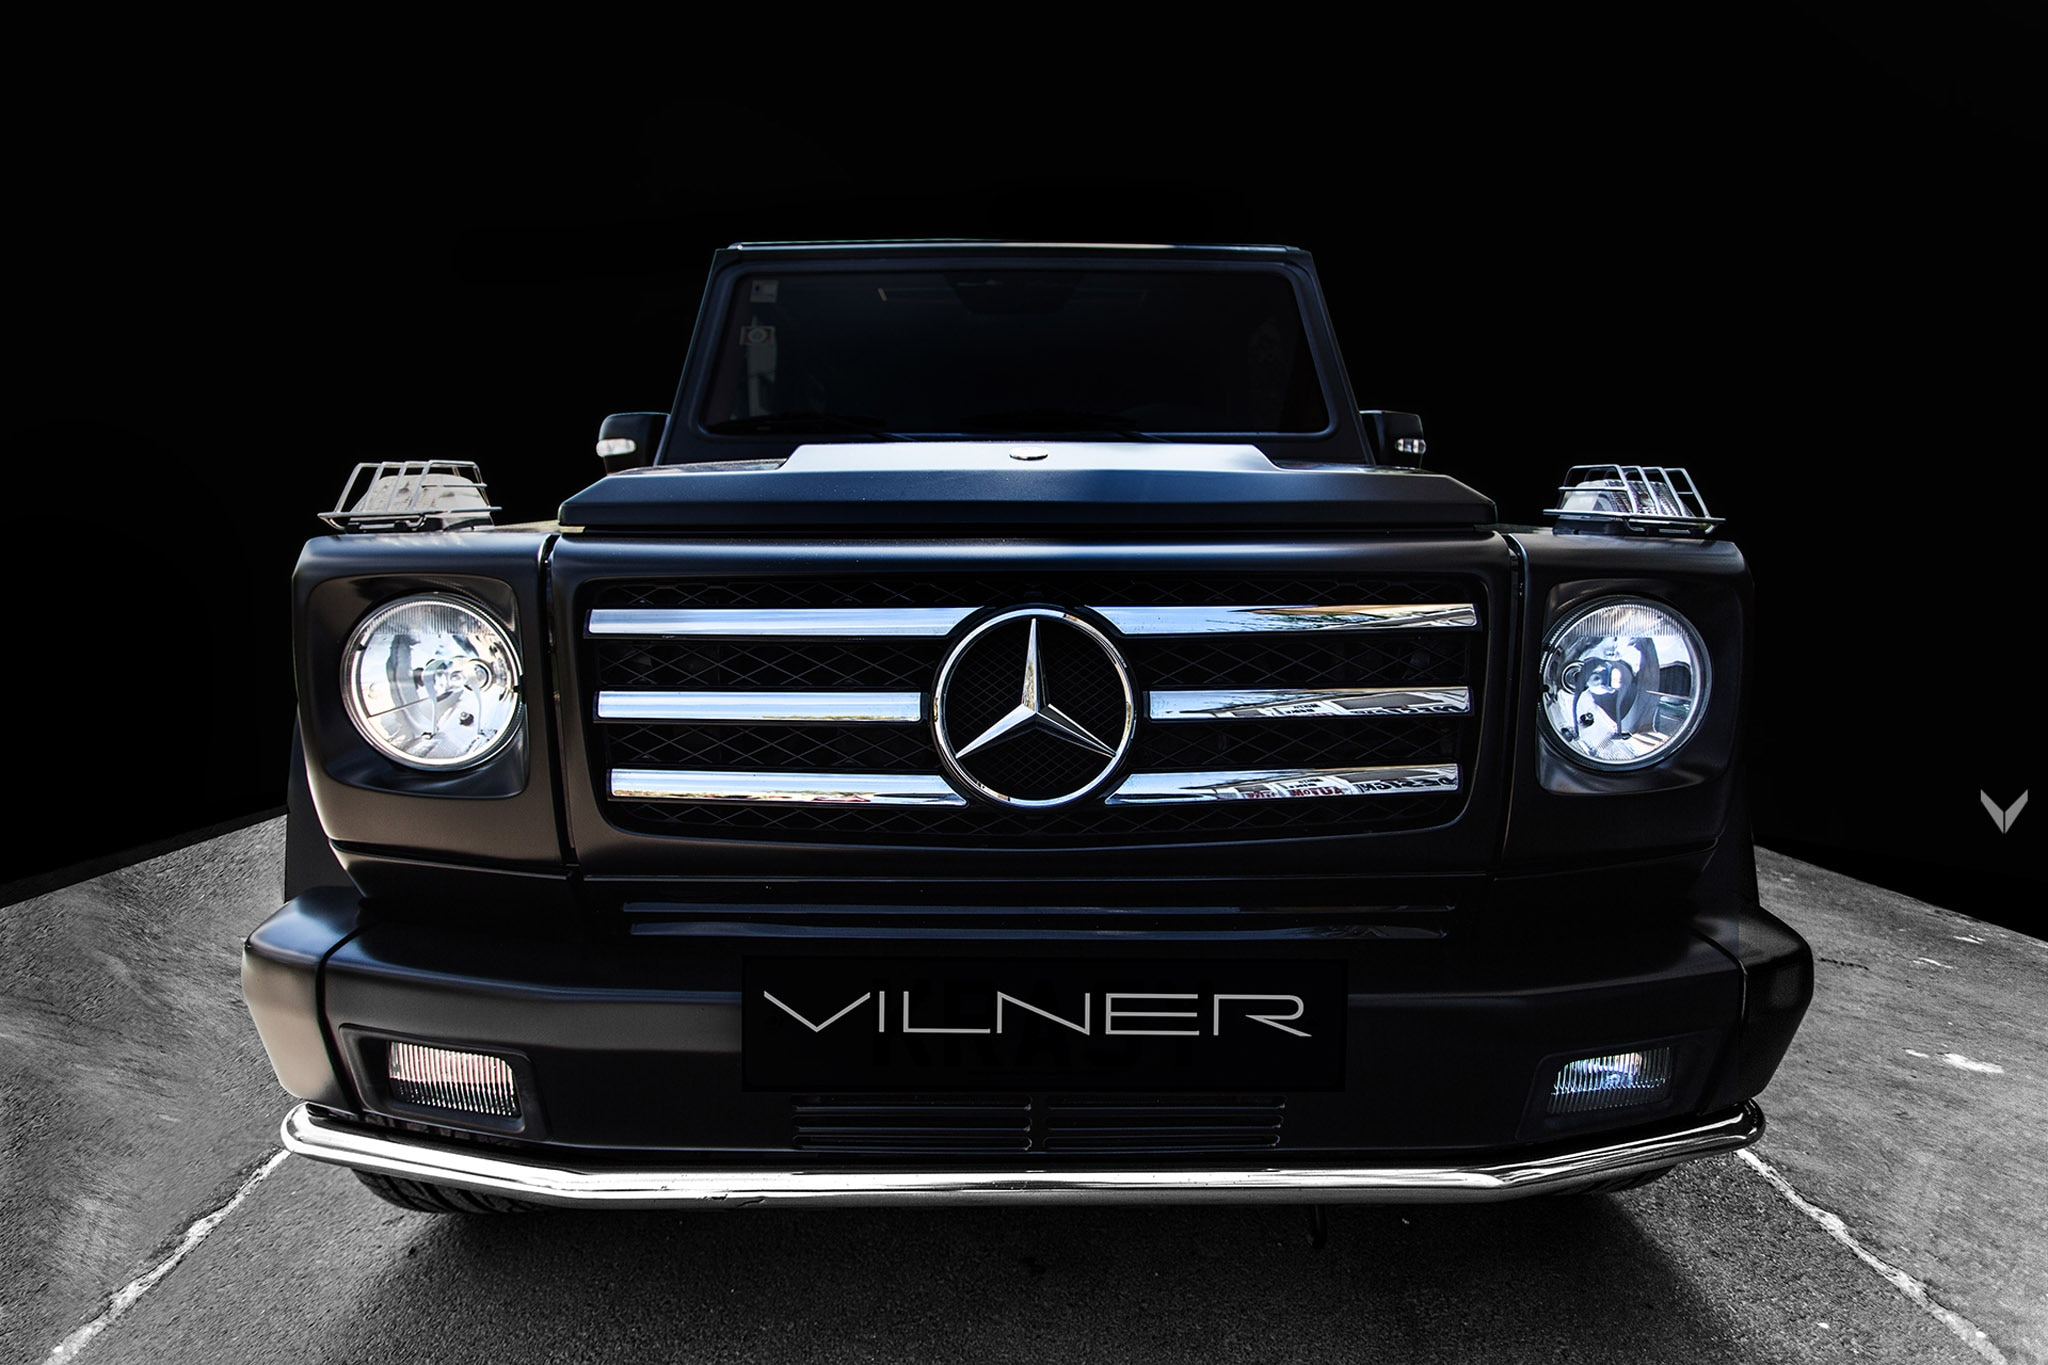 2005 mercedes benz g55 amg gets new game by vilner for 2005 mercedes benz suv